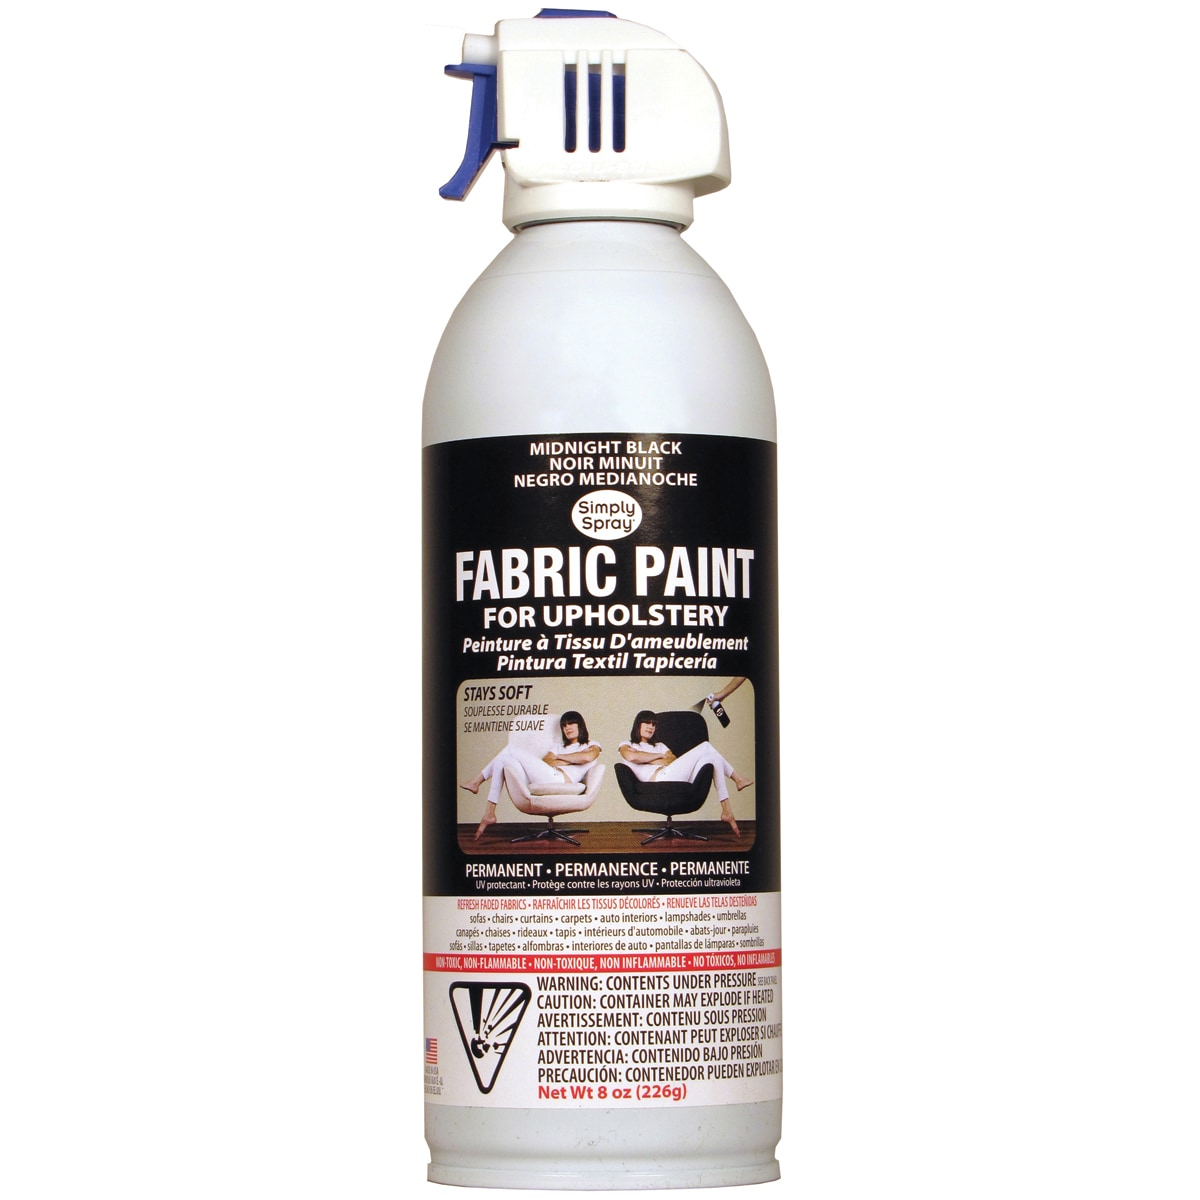 upholstery spray fabric paint midnight black 8 oz cans restorations. Black Bedroom Furniture Sets. Home Design Ideas